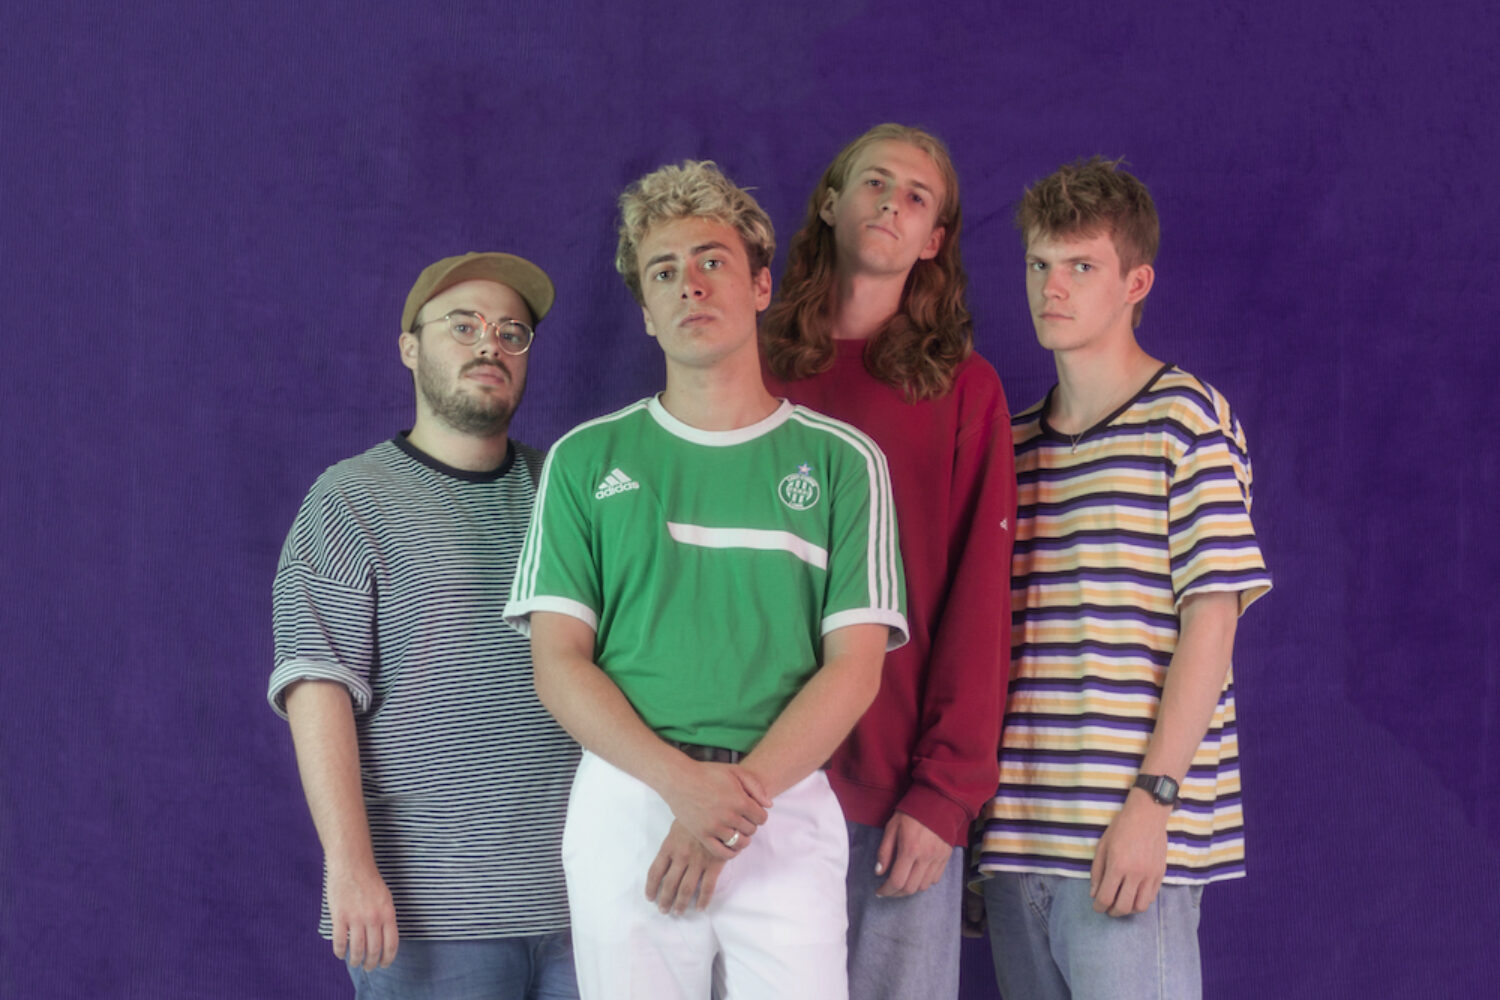 Ralph TV unveil Wes Anderson-inspired '4 U' video